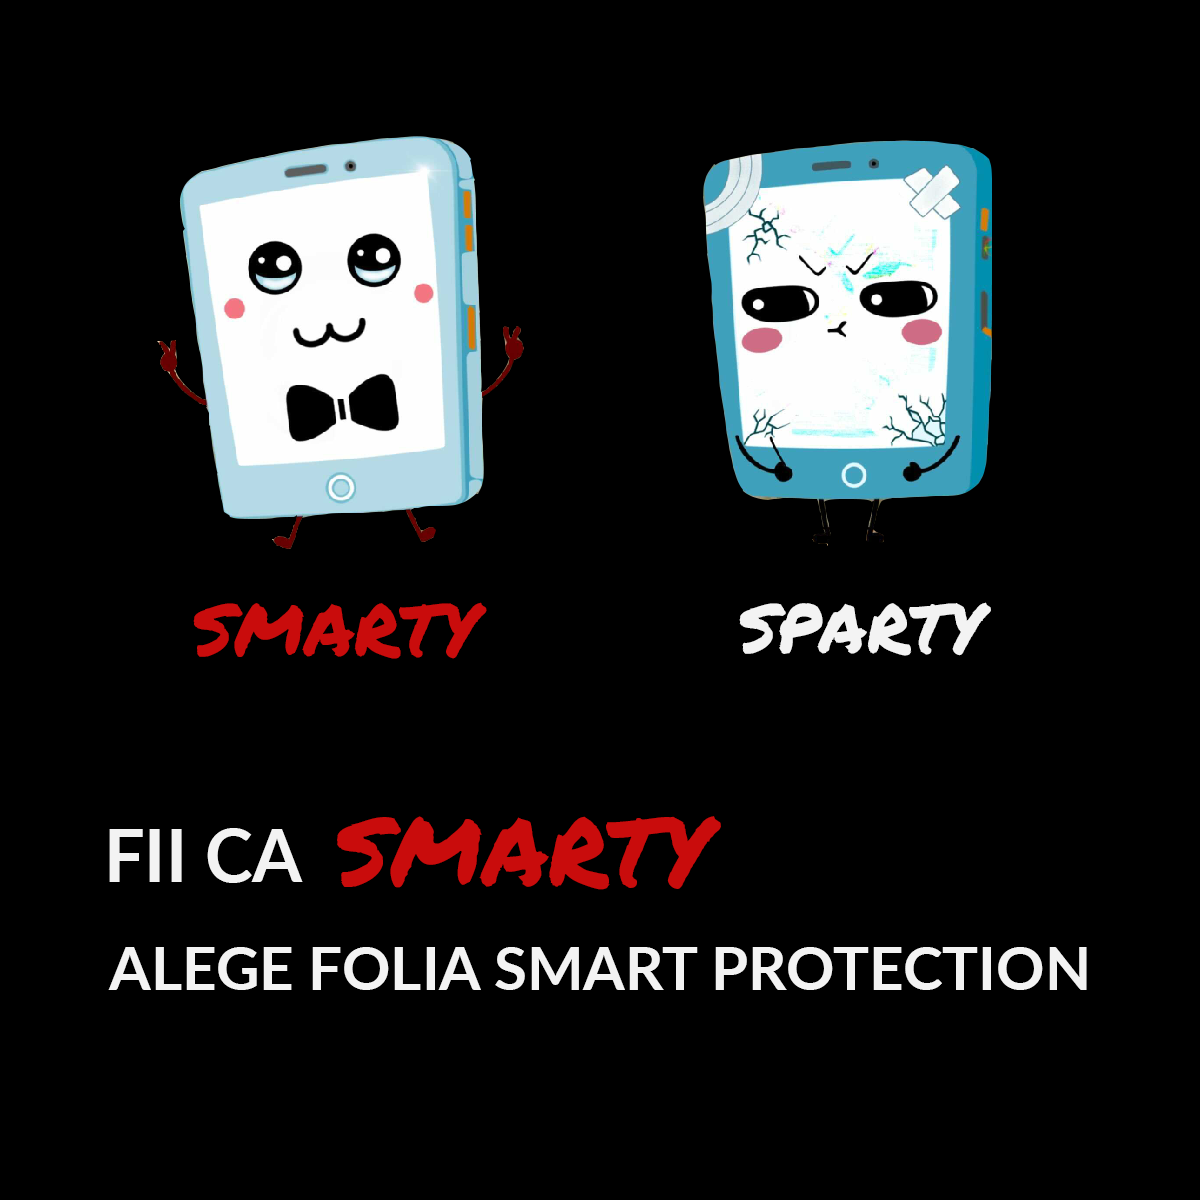 SmartProtection.ro – 20% La folii și sticlă securizată de protecție